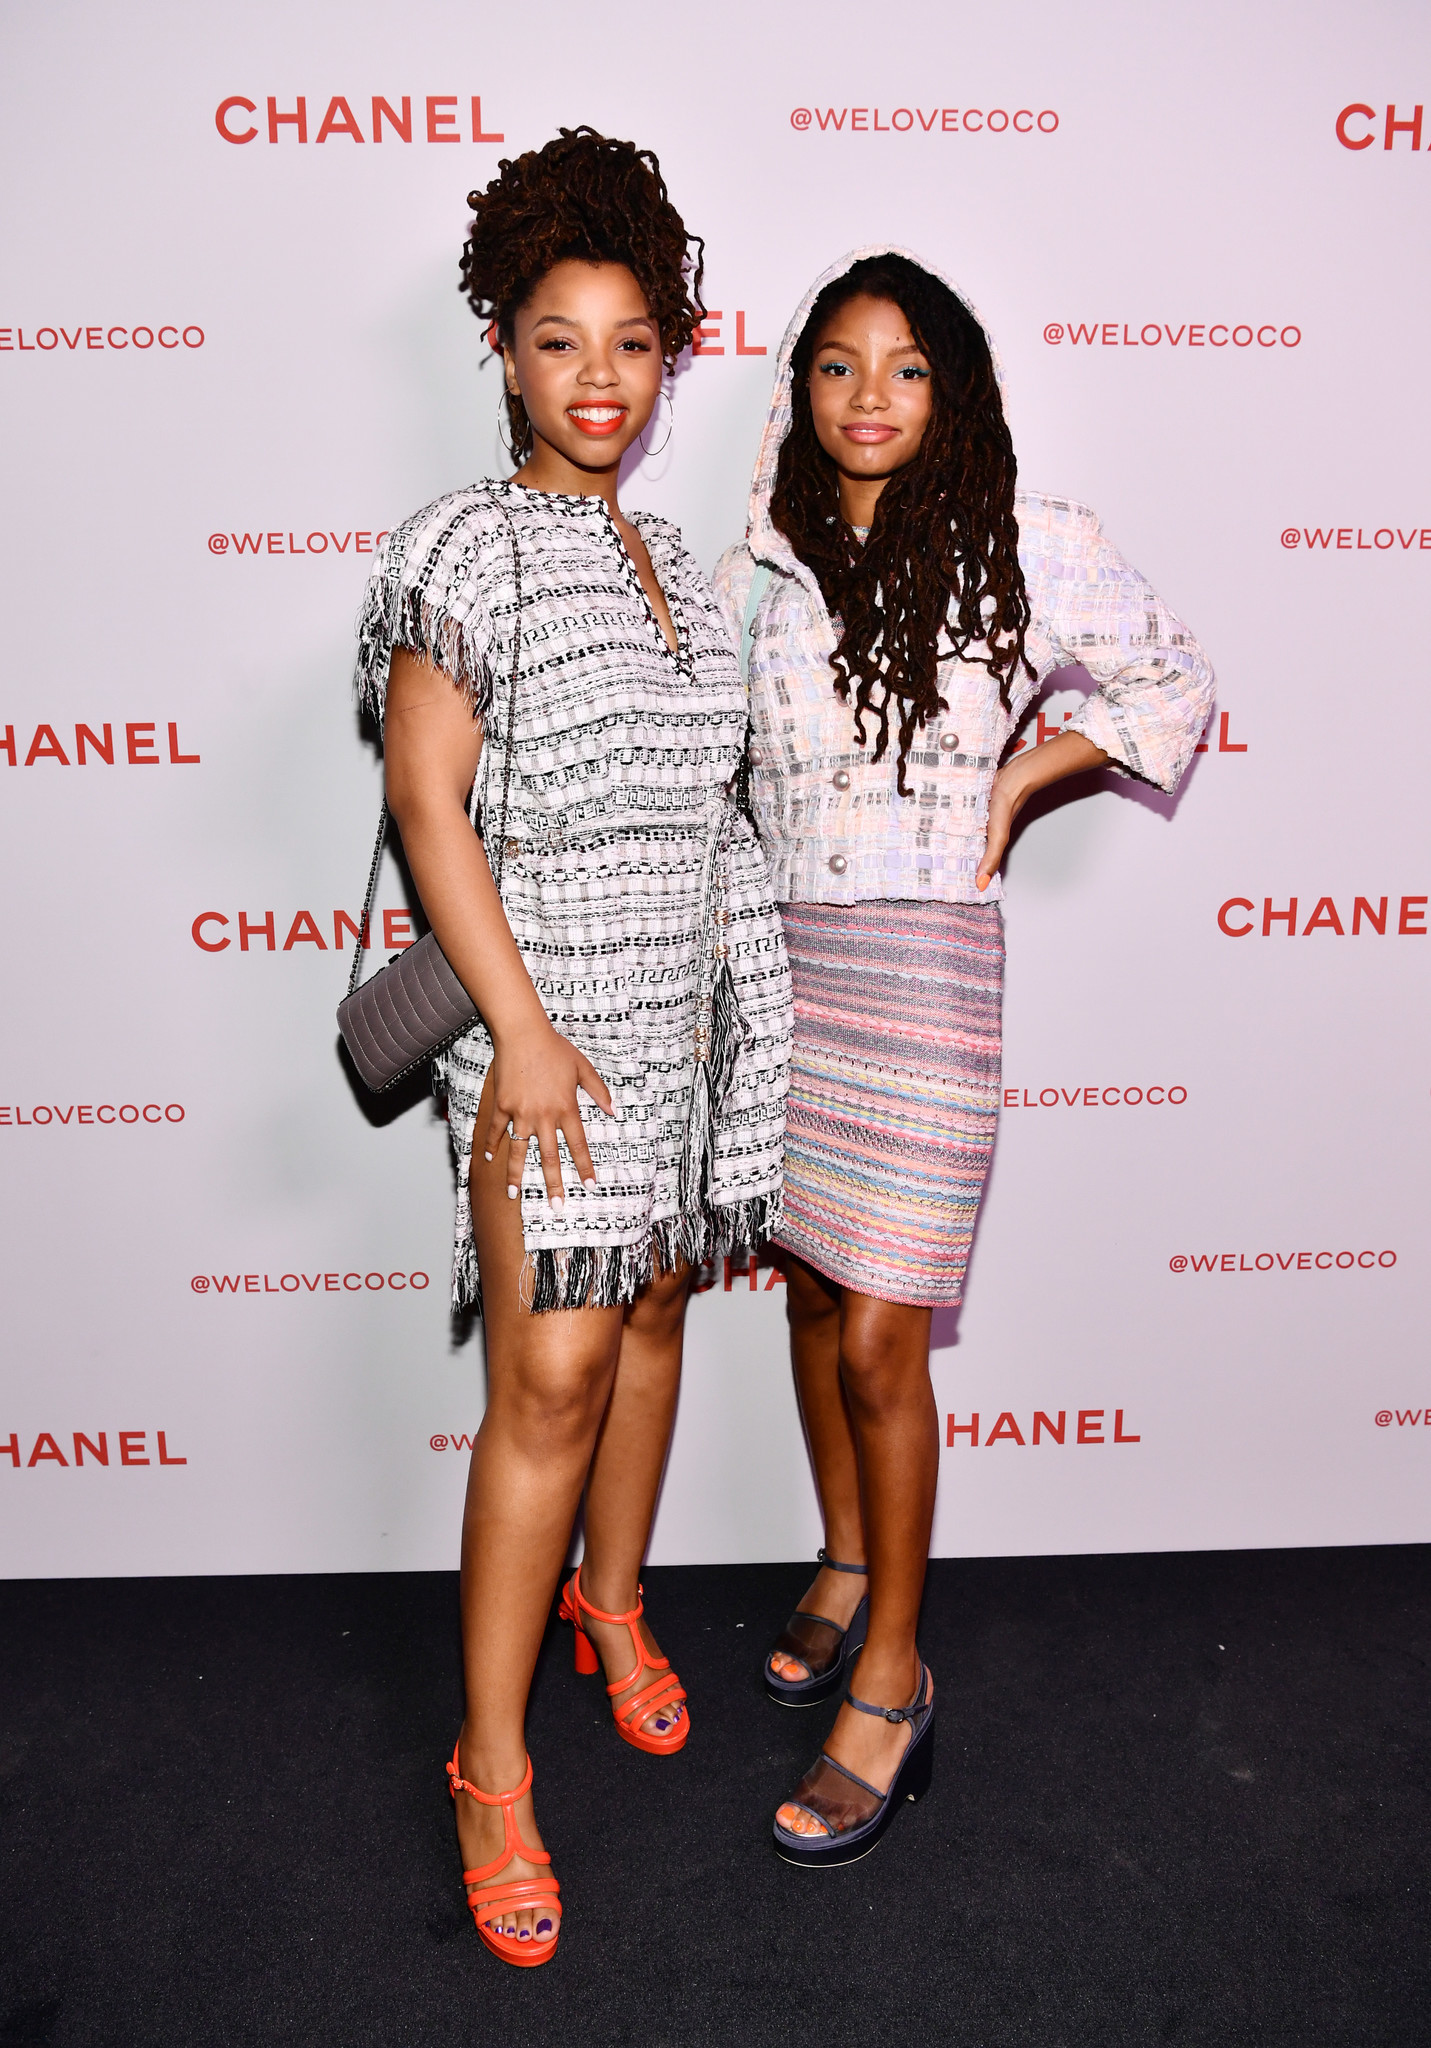 Chanel Party to Celebrate the Chanel Beauty House and @WELOVECOCO